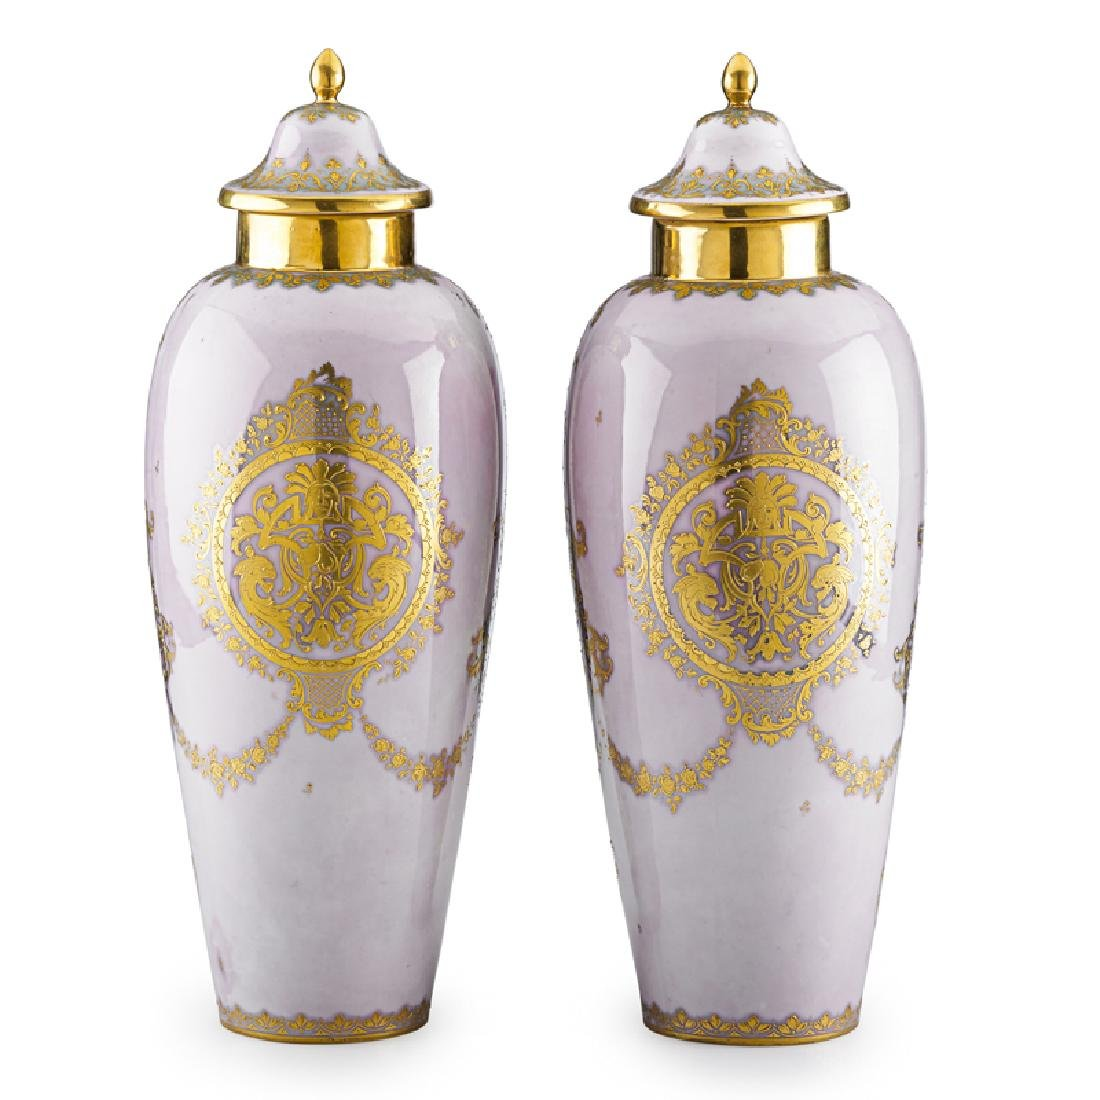 PAIR OF VIENNA STYLE PORCELAIN COVERED URNS - 2